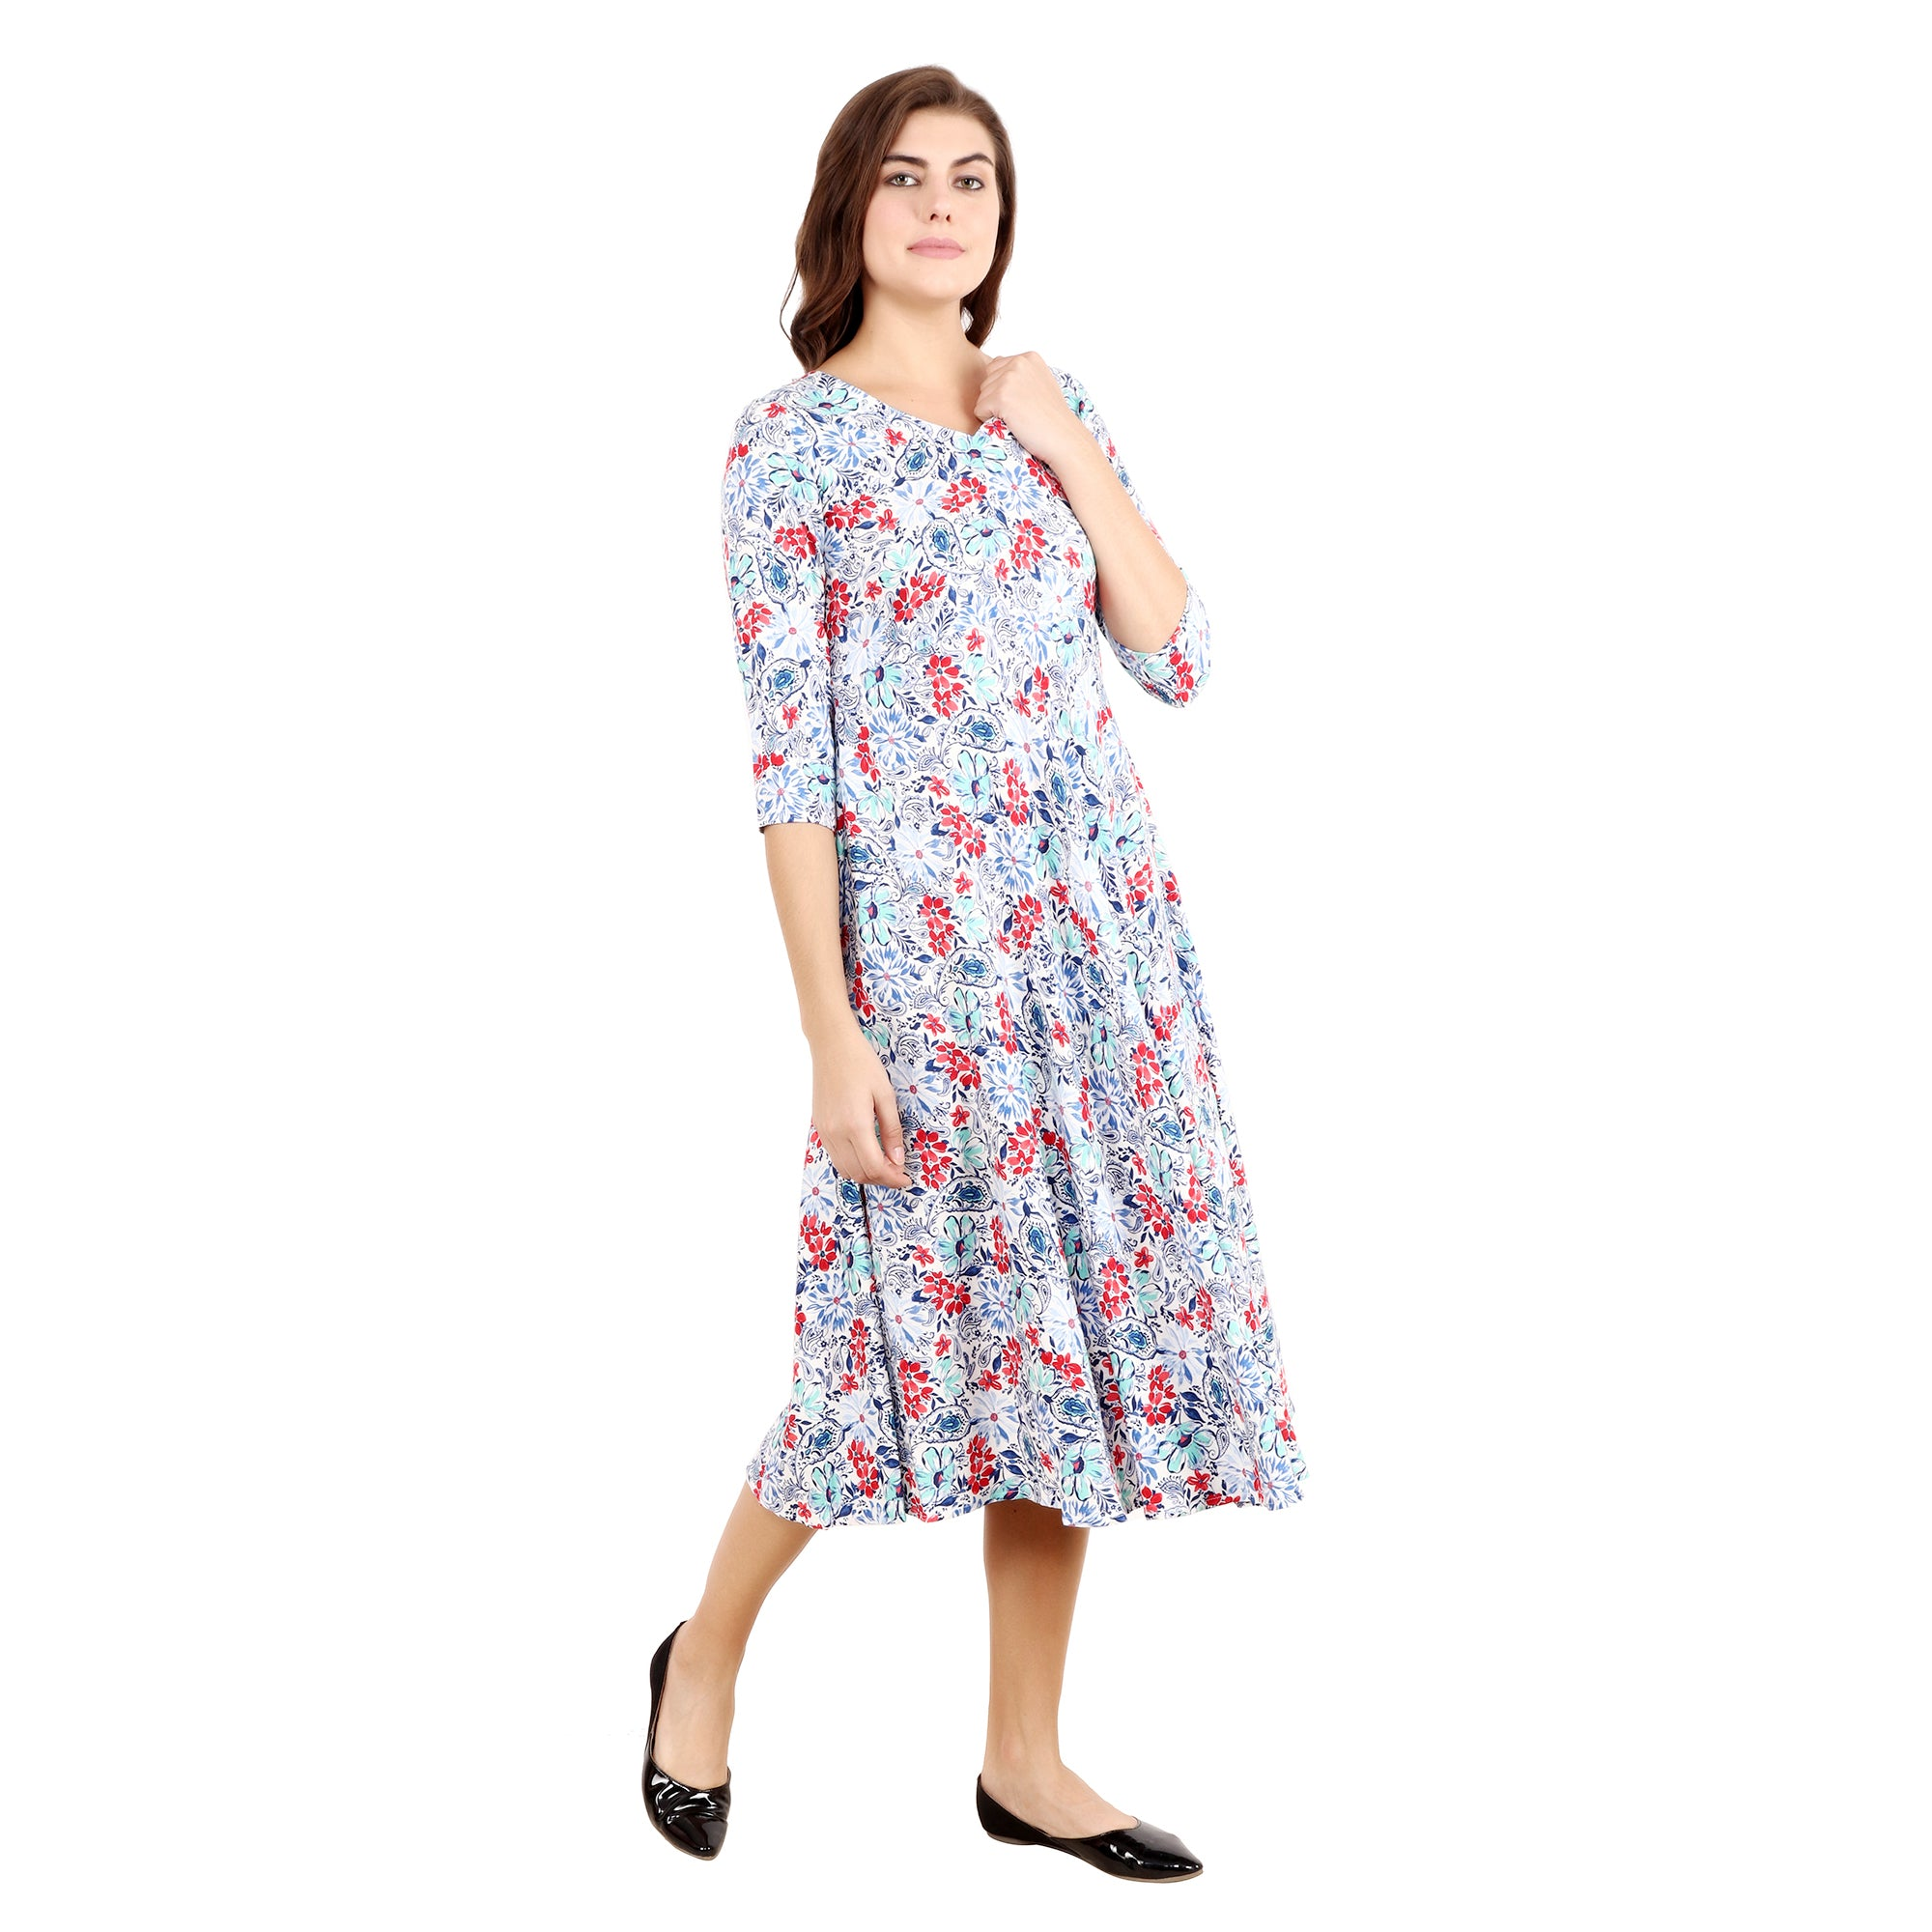 Blue Botanic Rayon Nursing & Maternity Plus Size Dress - Apella